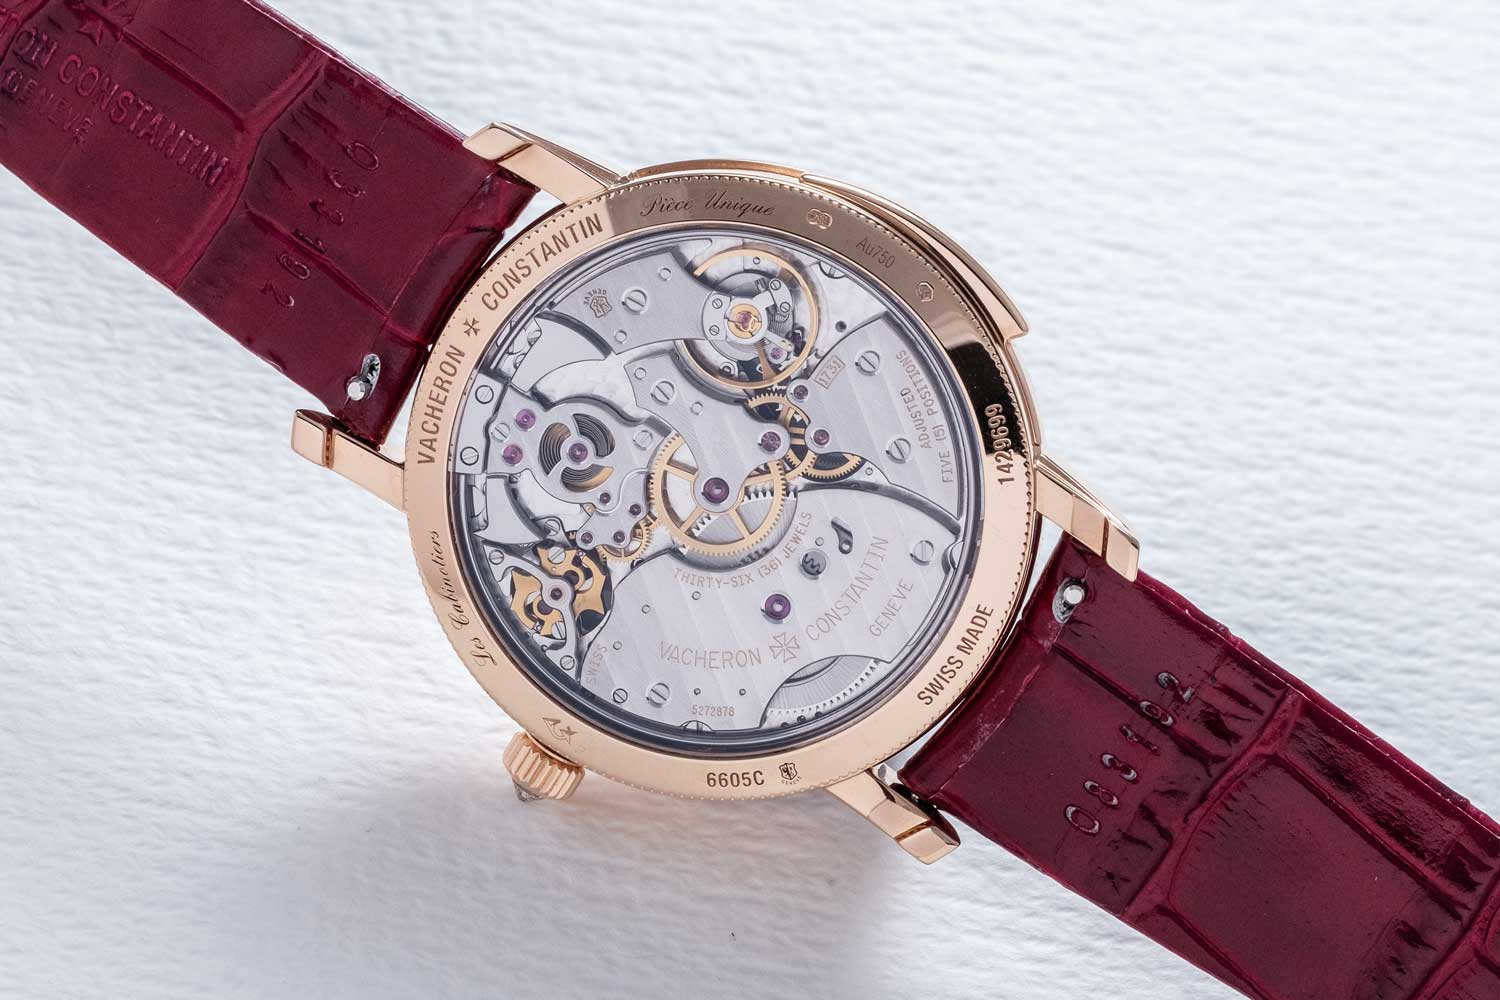 Les Cabinotiers Minute Repeater Ultra-thin - 39mm (Image © Revolution)